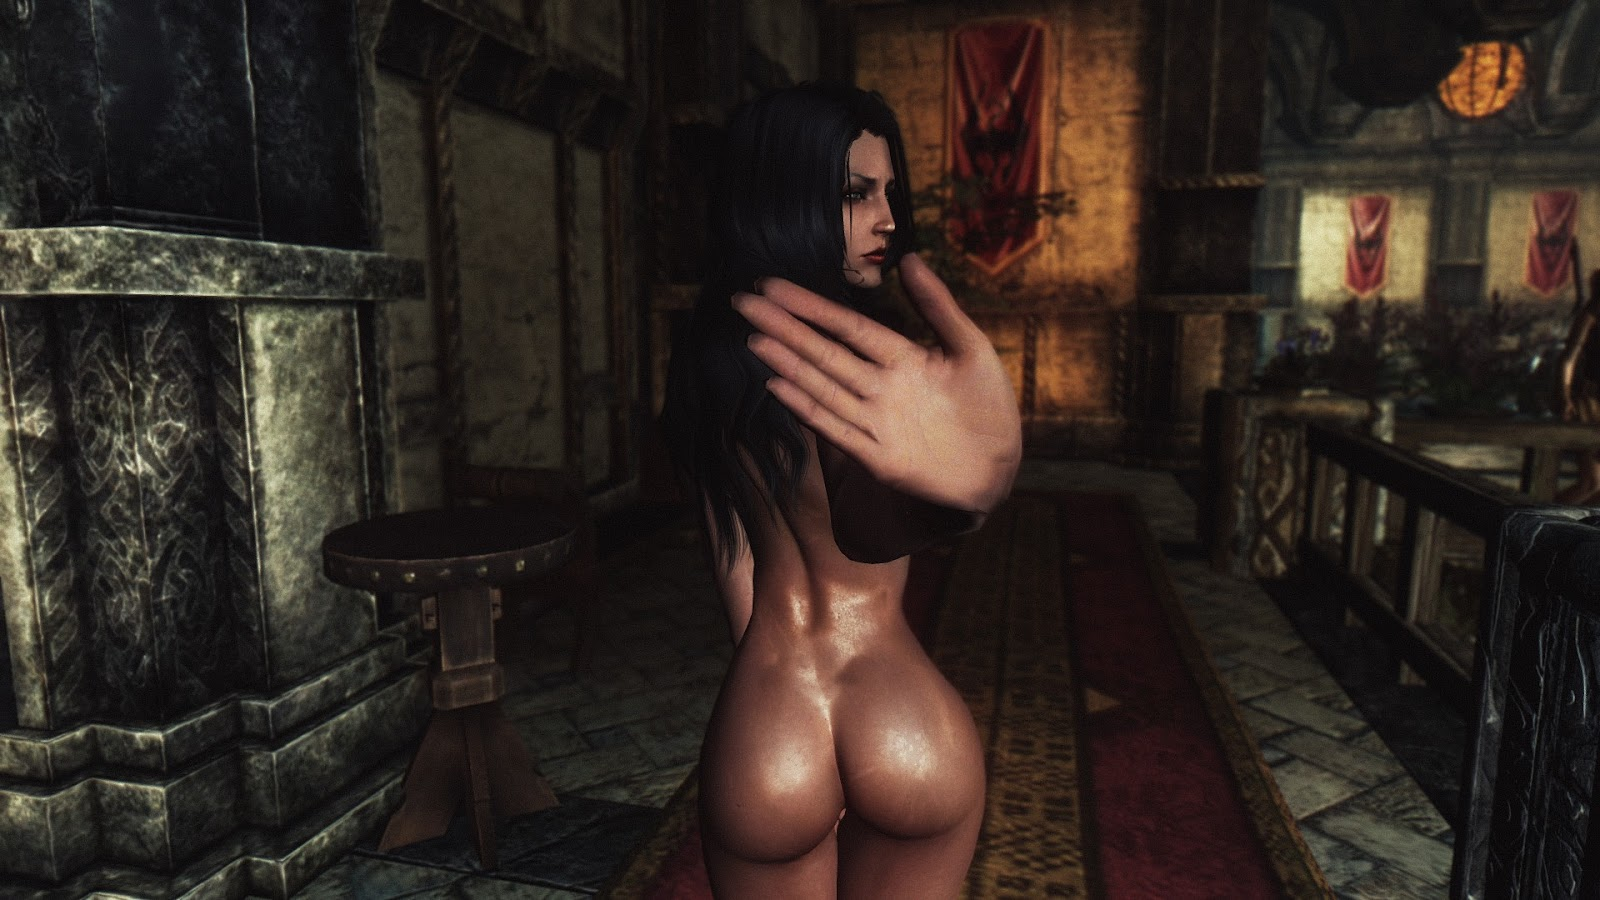 Prince of persia porn think